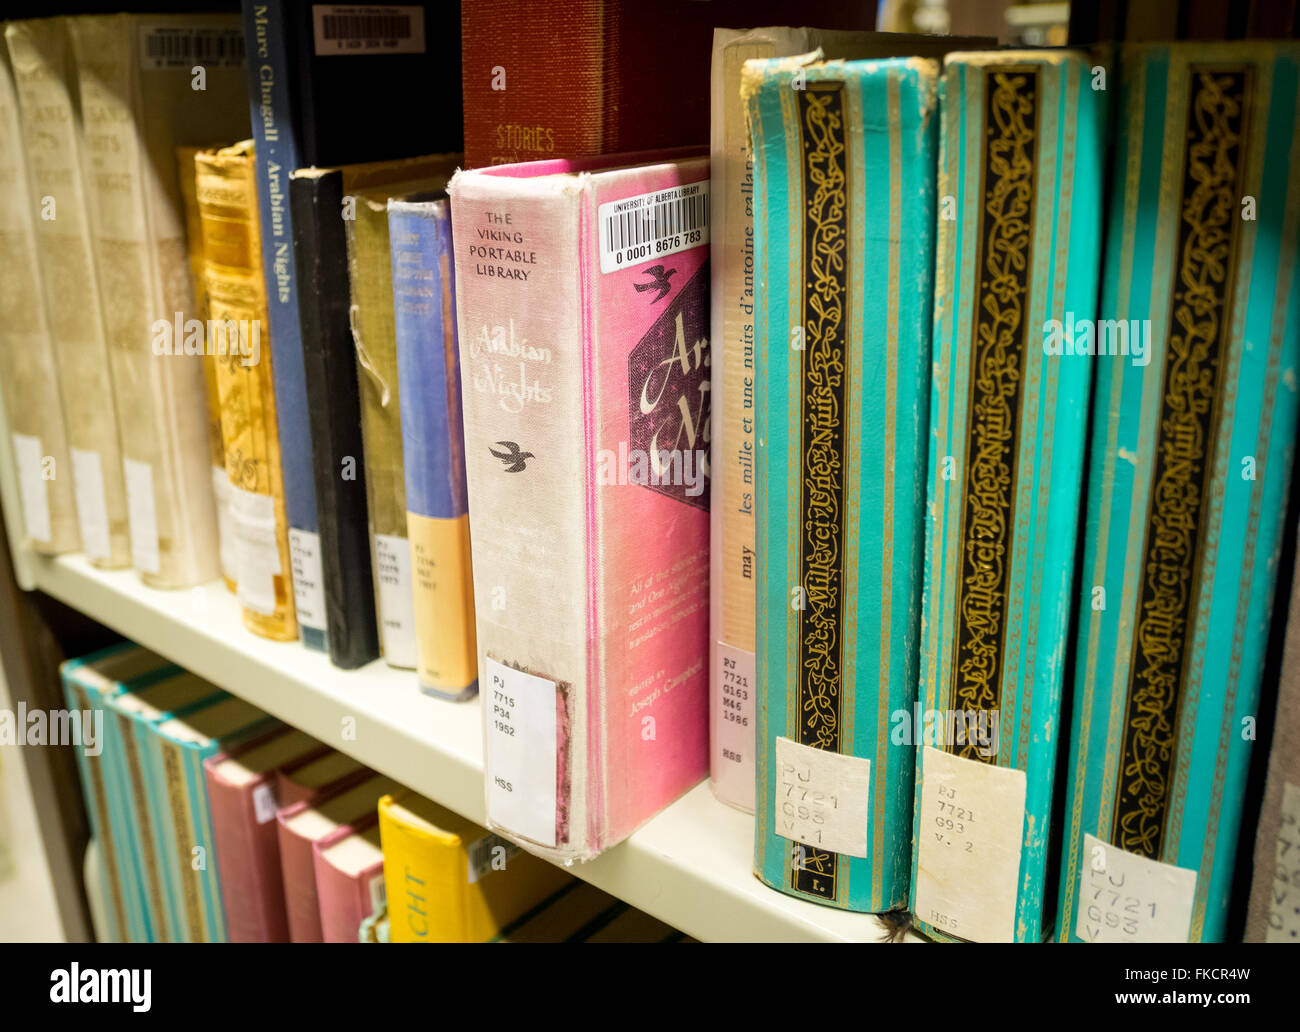 A library bookshelf of old Arabian Nights (One Thousand and One Nights) books. - Stock Image